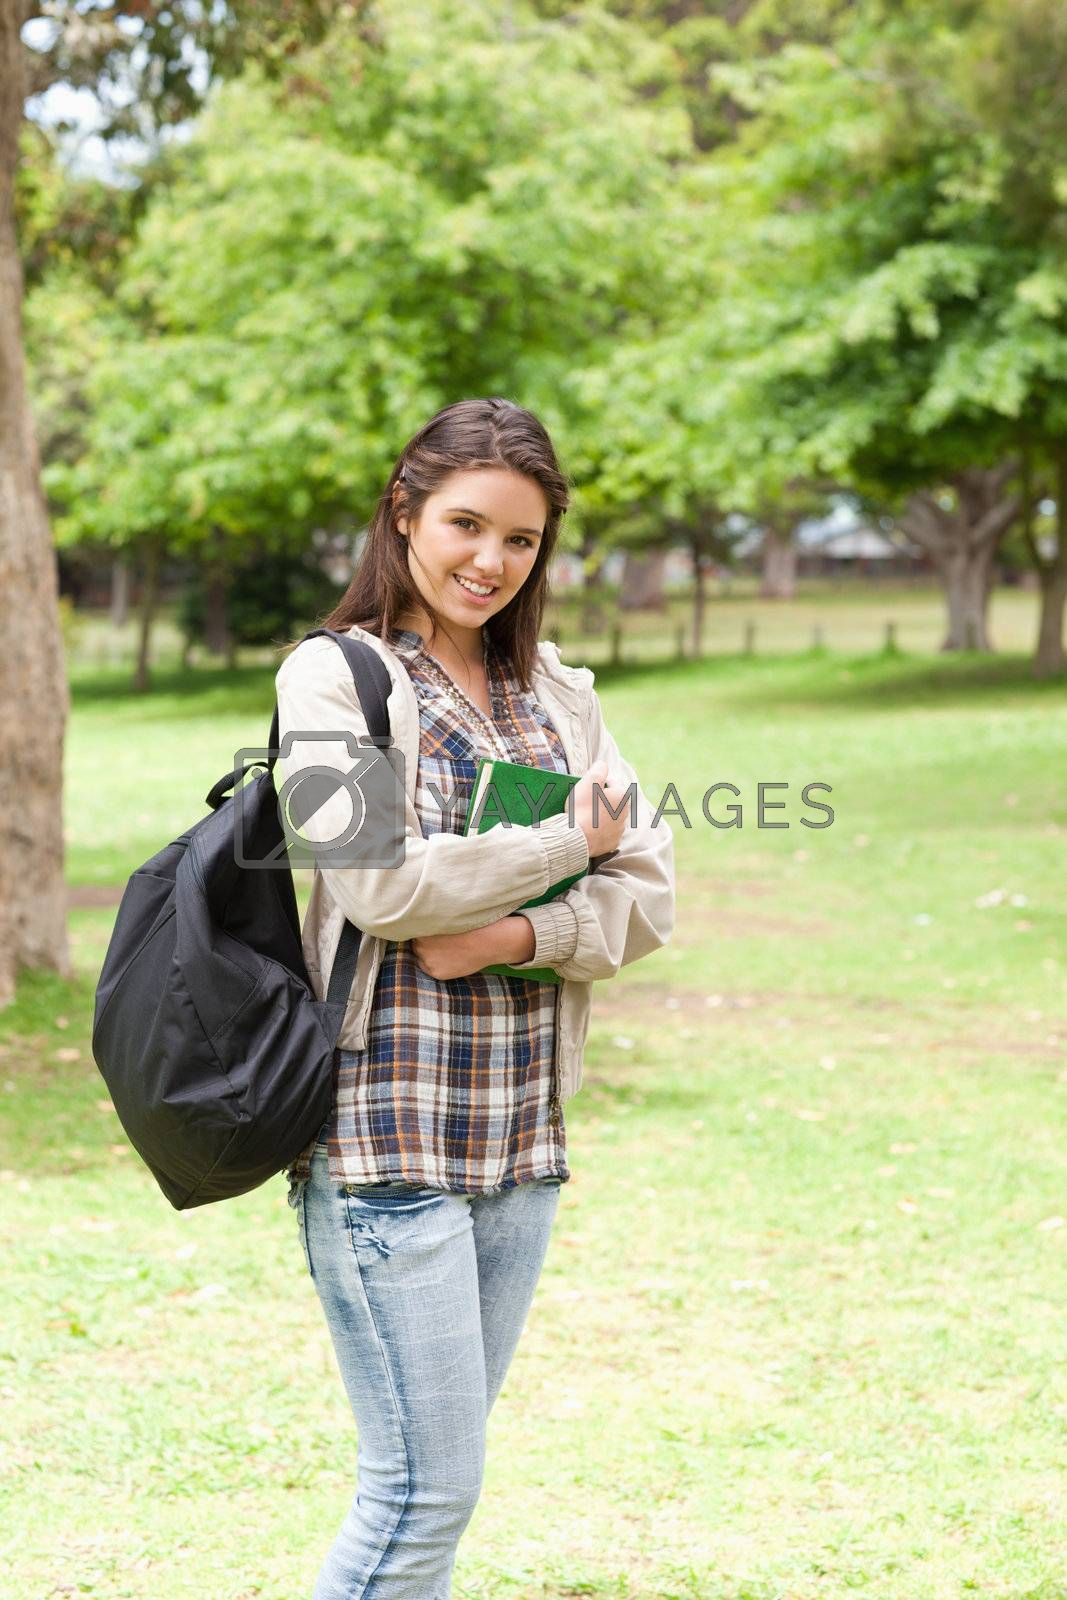 Young student holding textbook while posing in a park